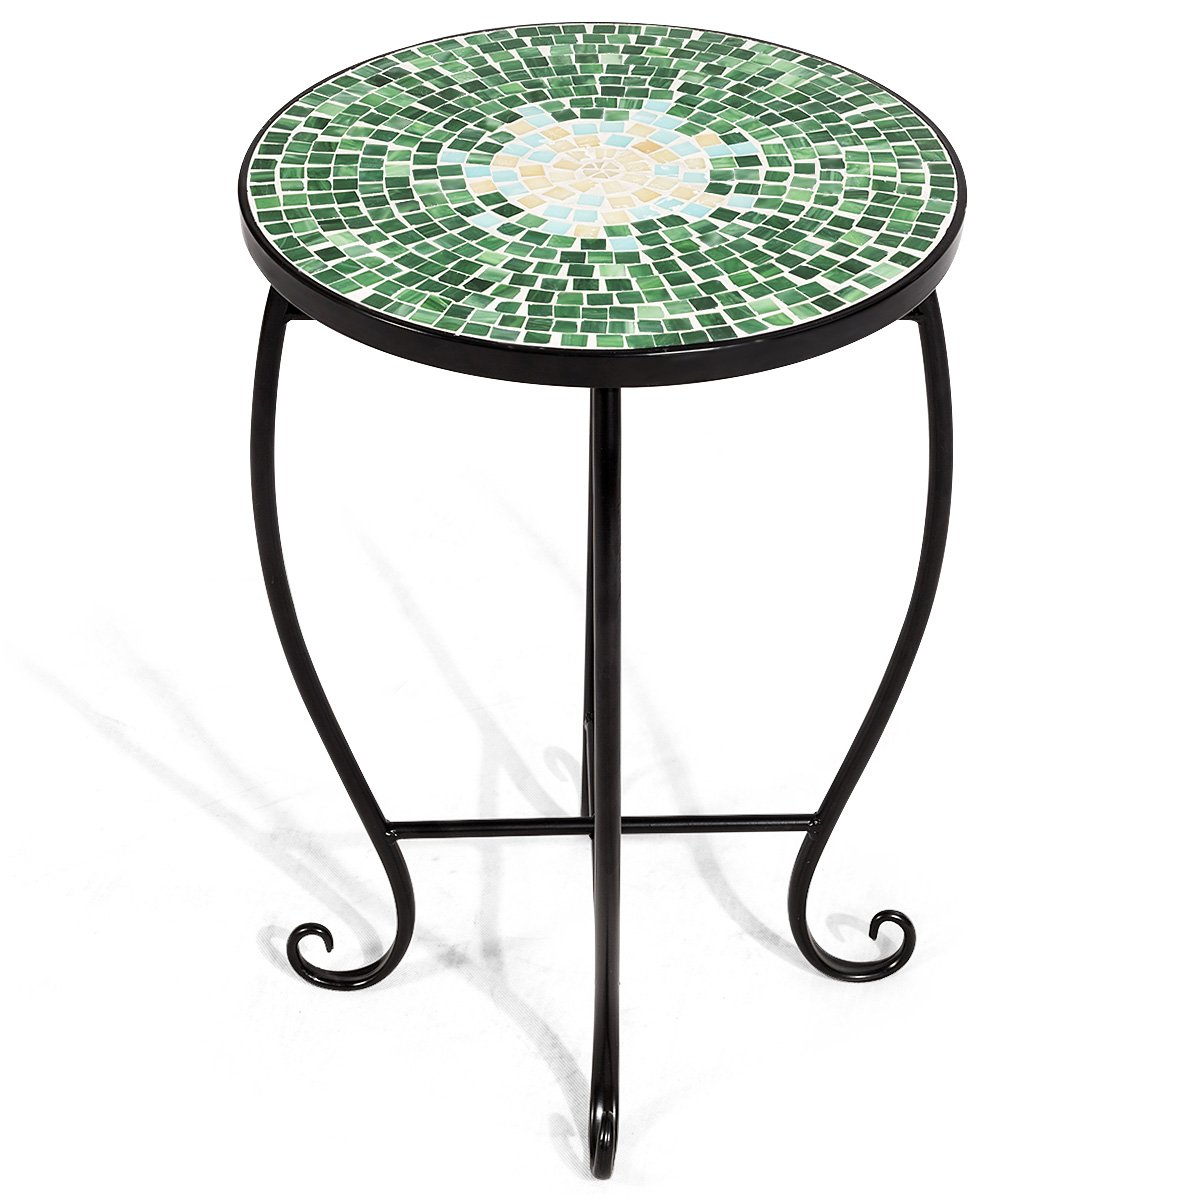 giantex mosaic round side accent table patio plant bella green outdoor stand porch beach theme balcony back deck pool decor metal cobalt glass top indoor oval wood coffee plastic